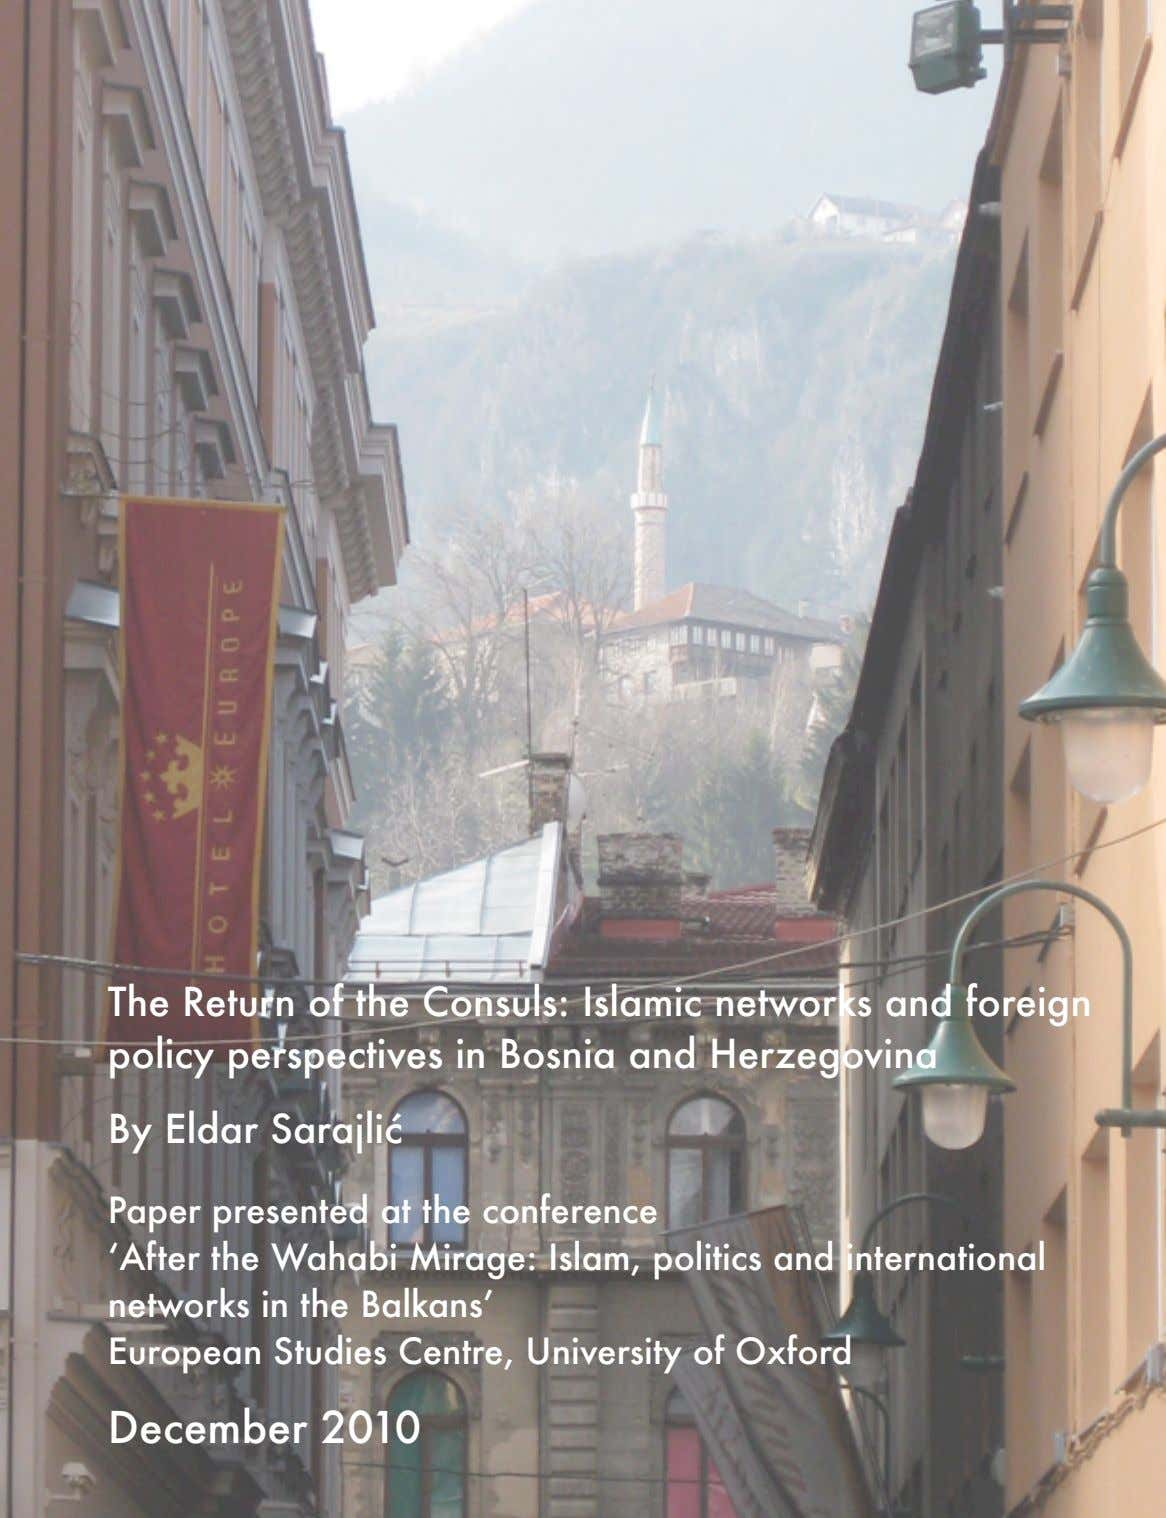 The Return of the Consuls: Islamic networks and foreign policy perspectives in Bosnia and Herzegovina